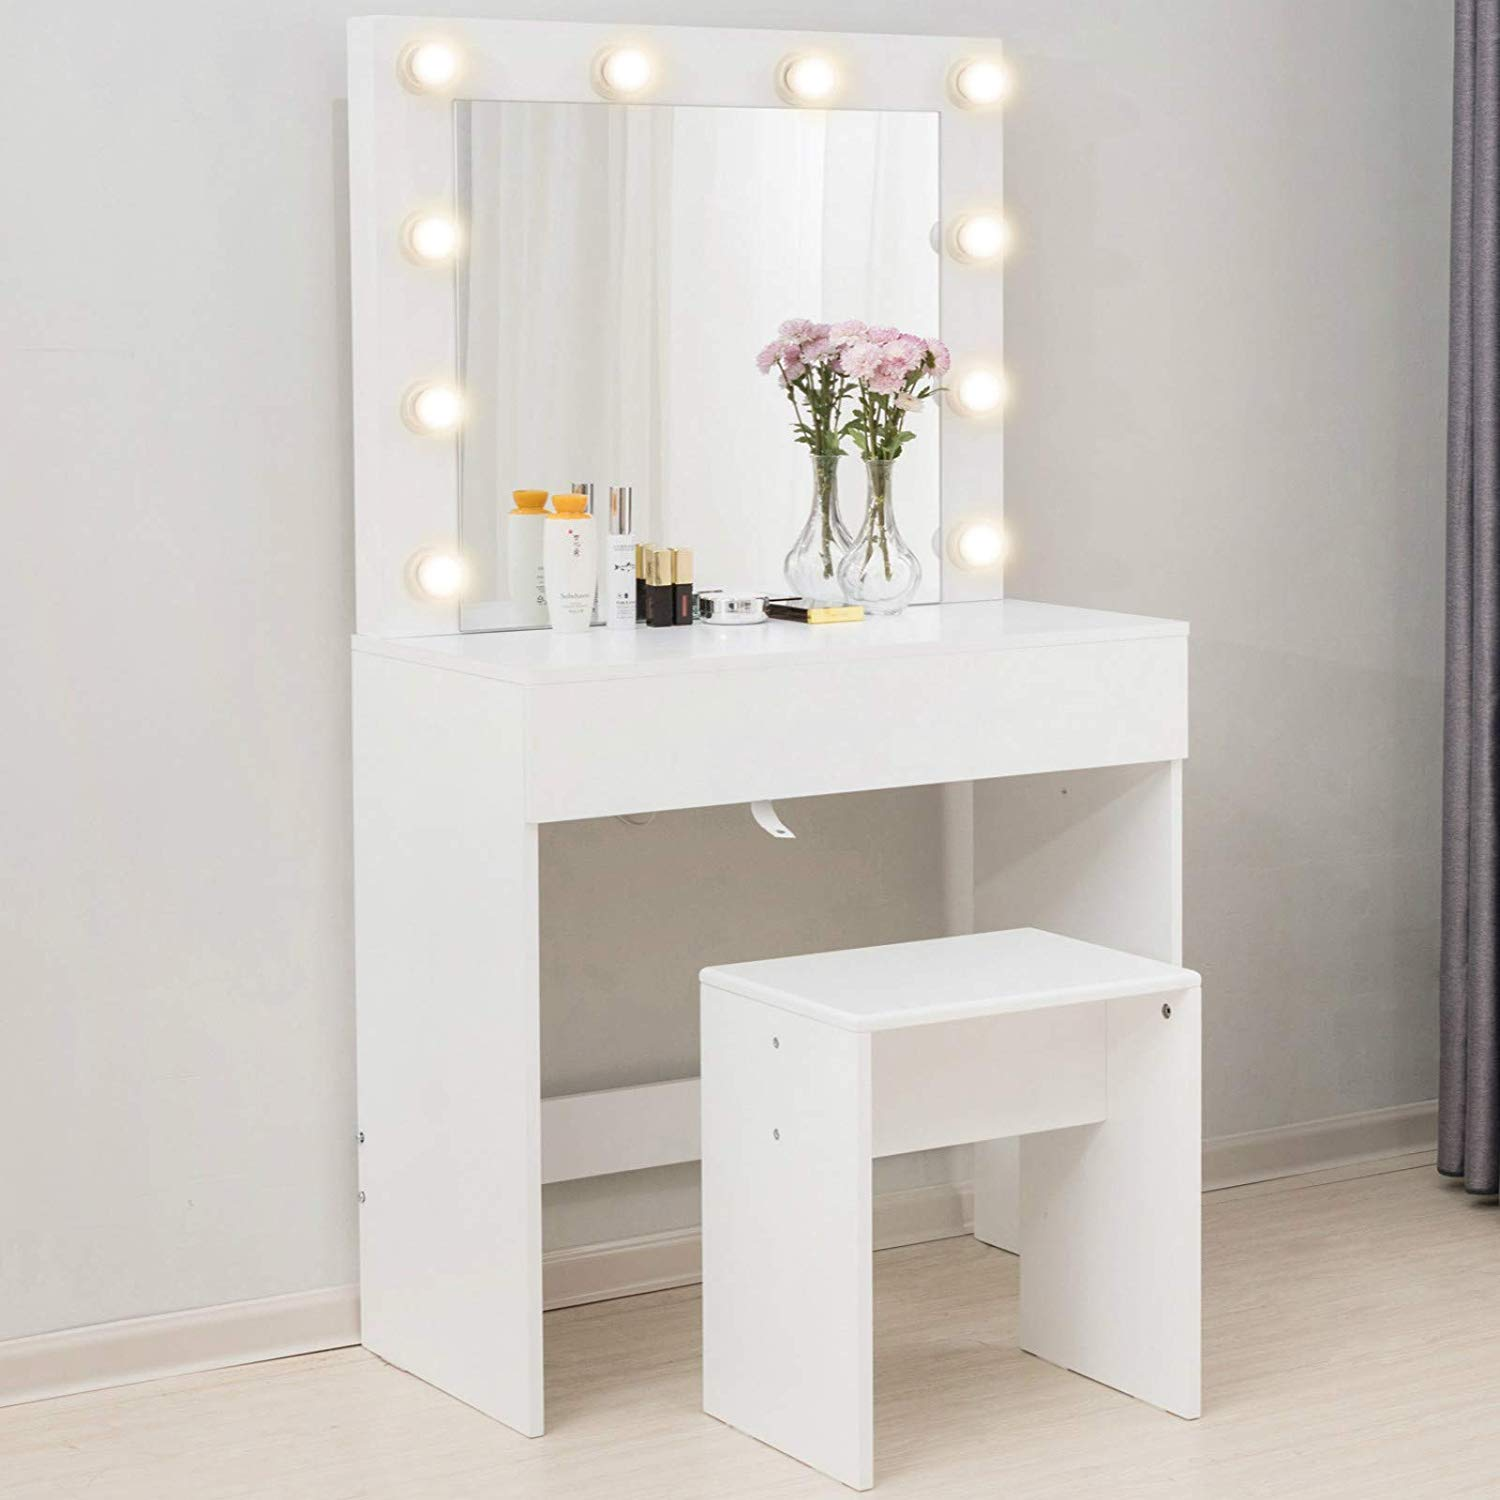 Mecor Makeup Vanity Table w/11 LED Lights Mirror,Vanity Set with  Stool&Drawer,Wood Dressing Table Bedroom Furniture Girls Women Gifts White